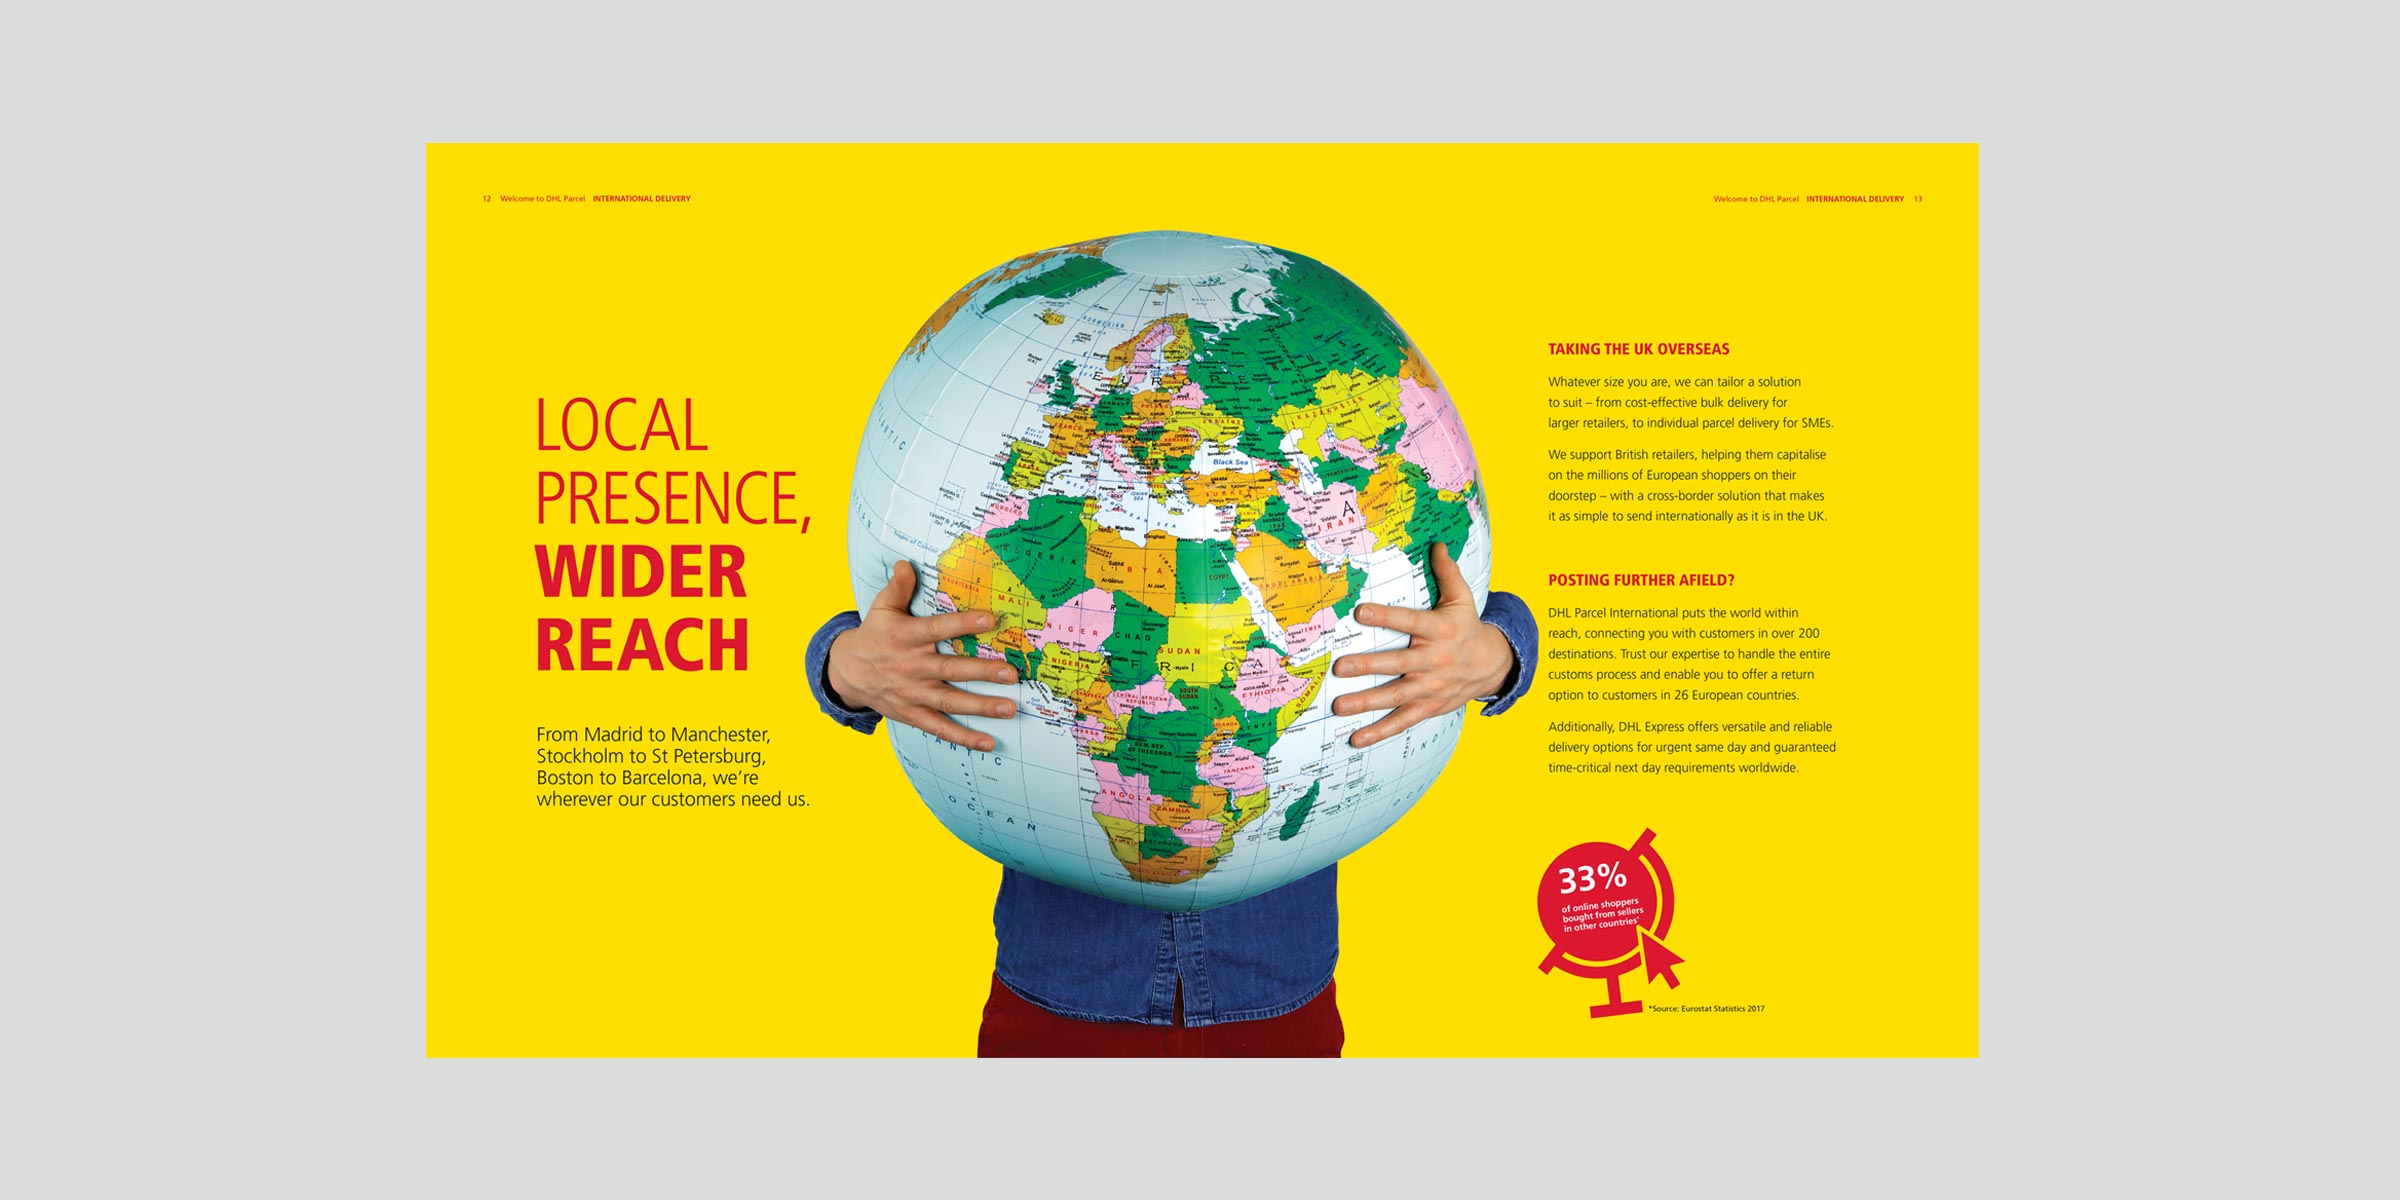 DHL | The Creative Consultancy